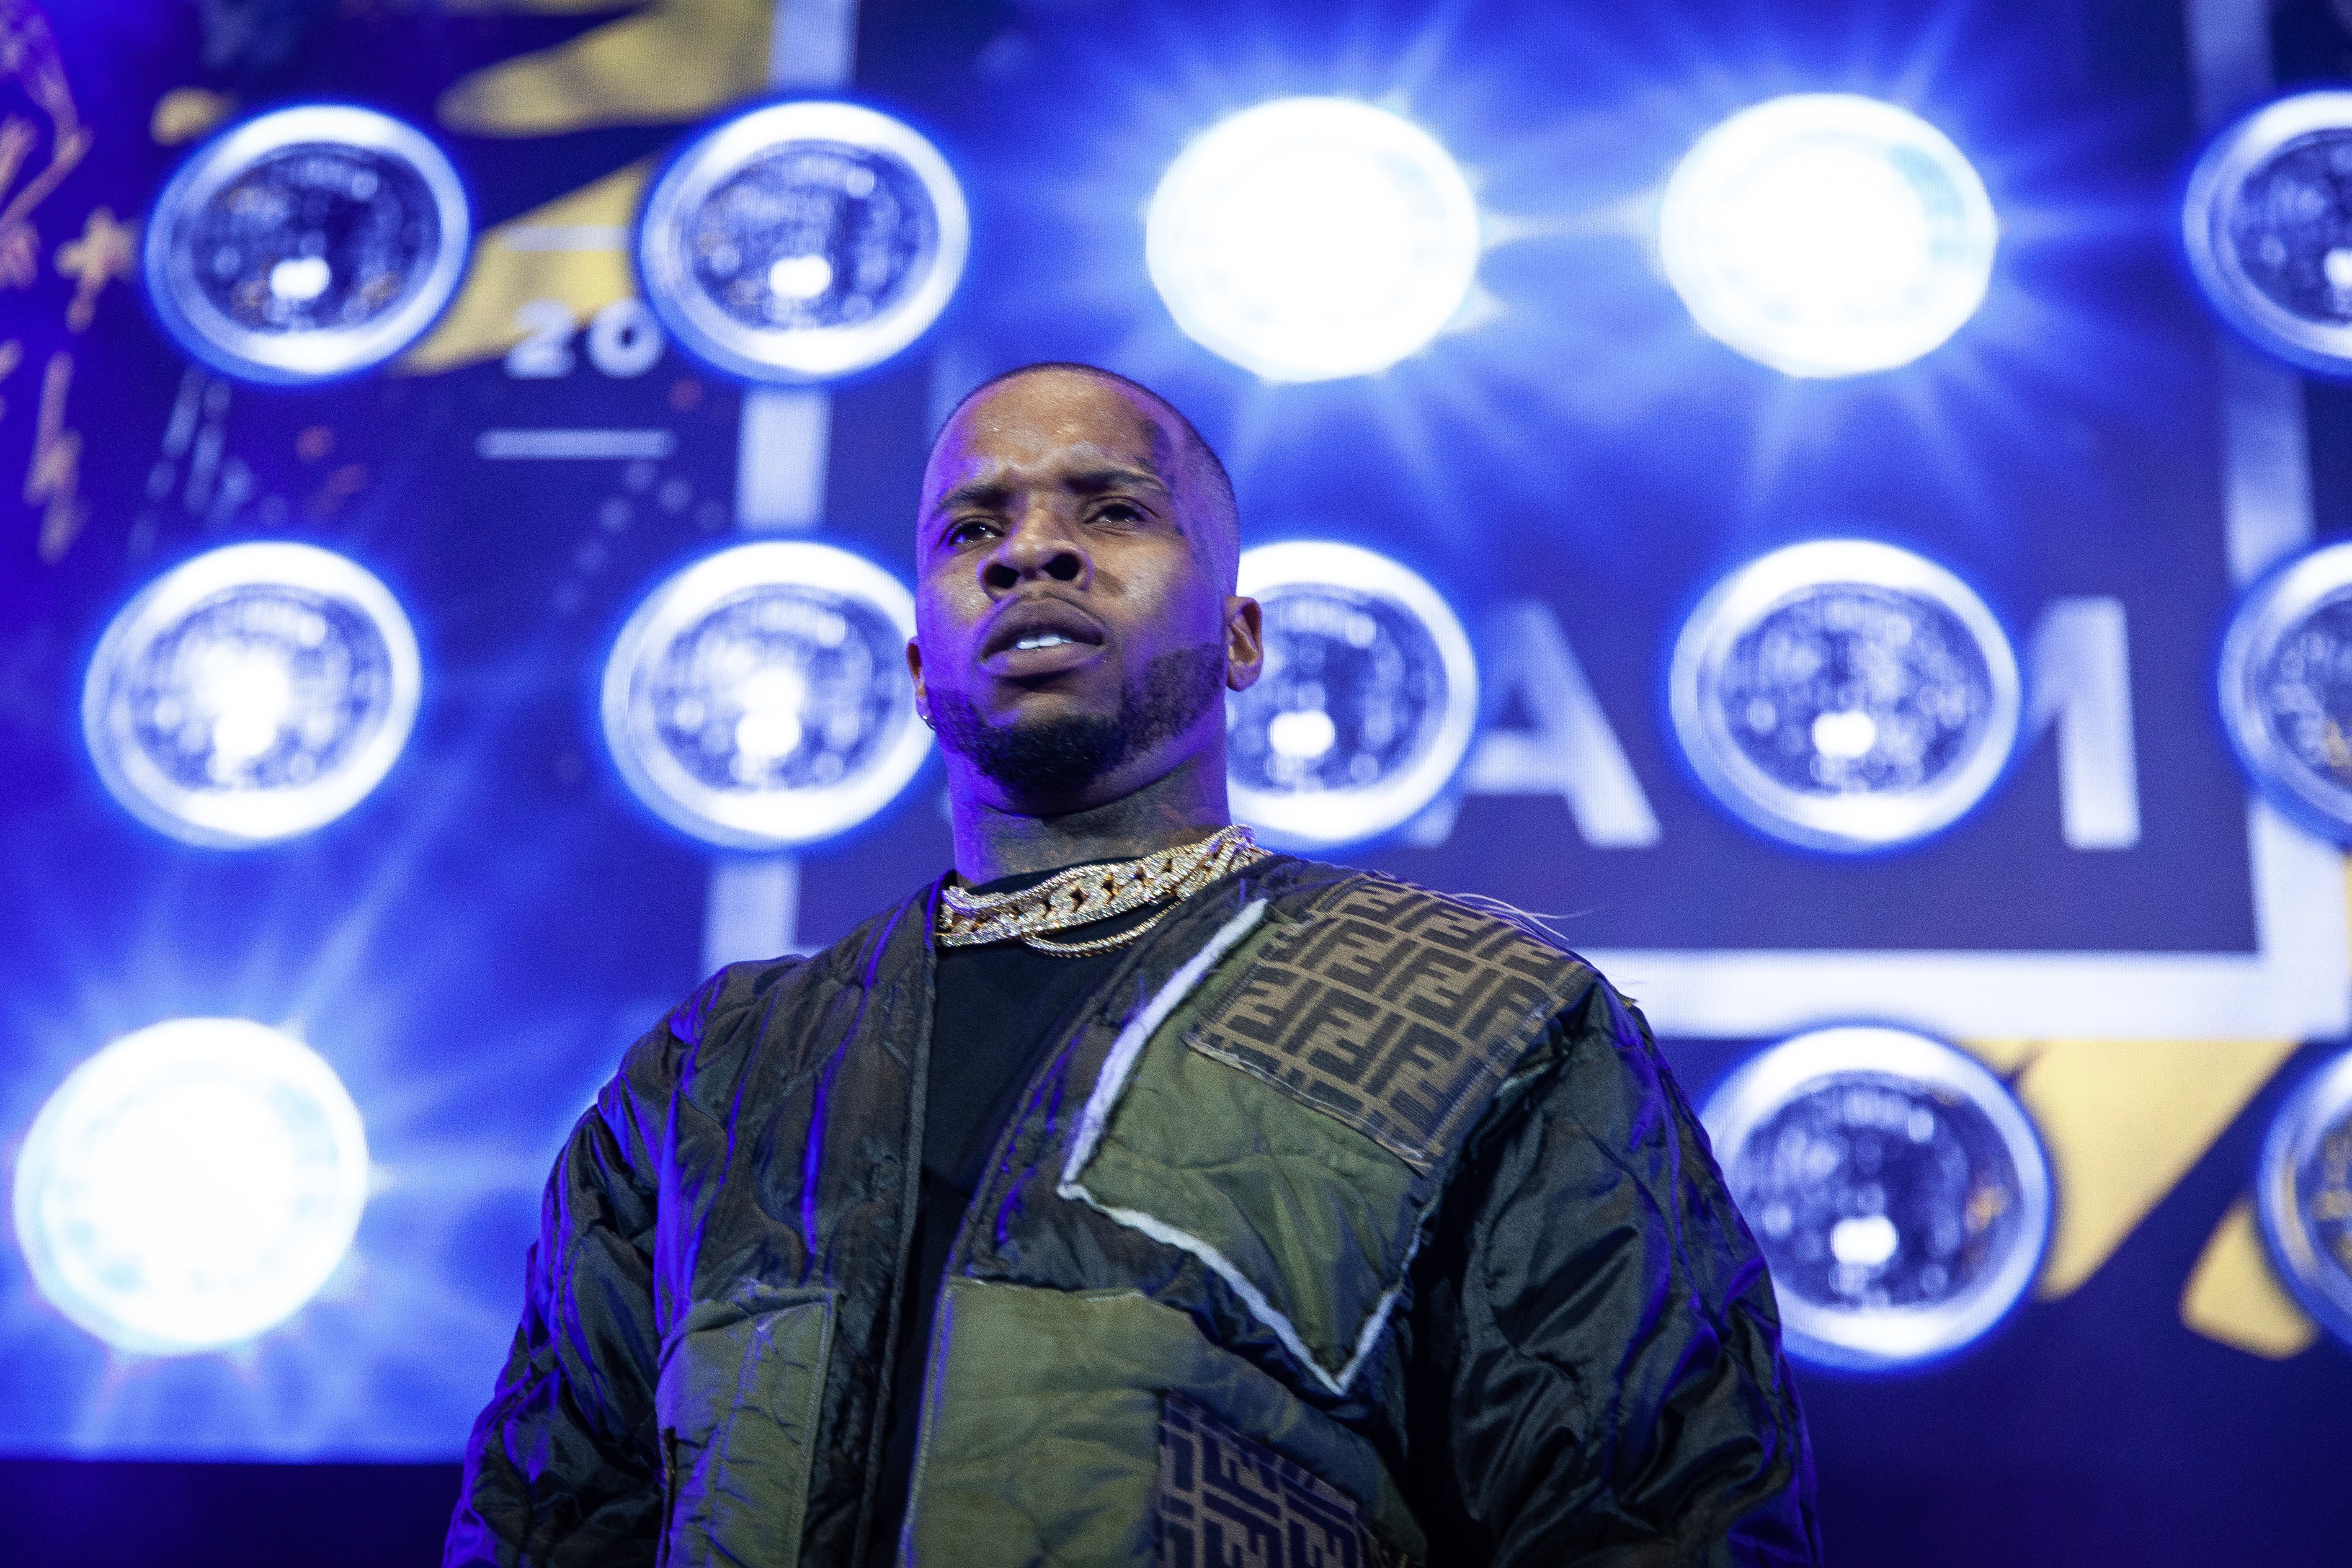 Tory Lanez Denies Claims He Staged Video Depicting Colorism